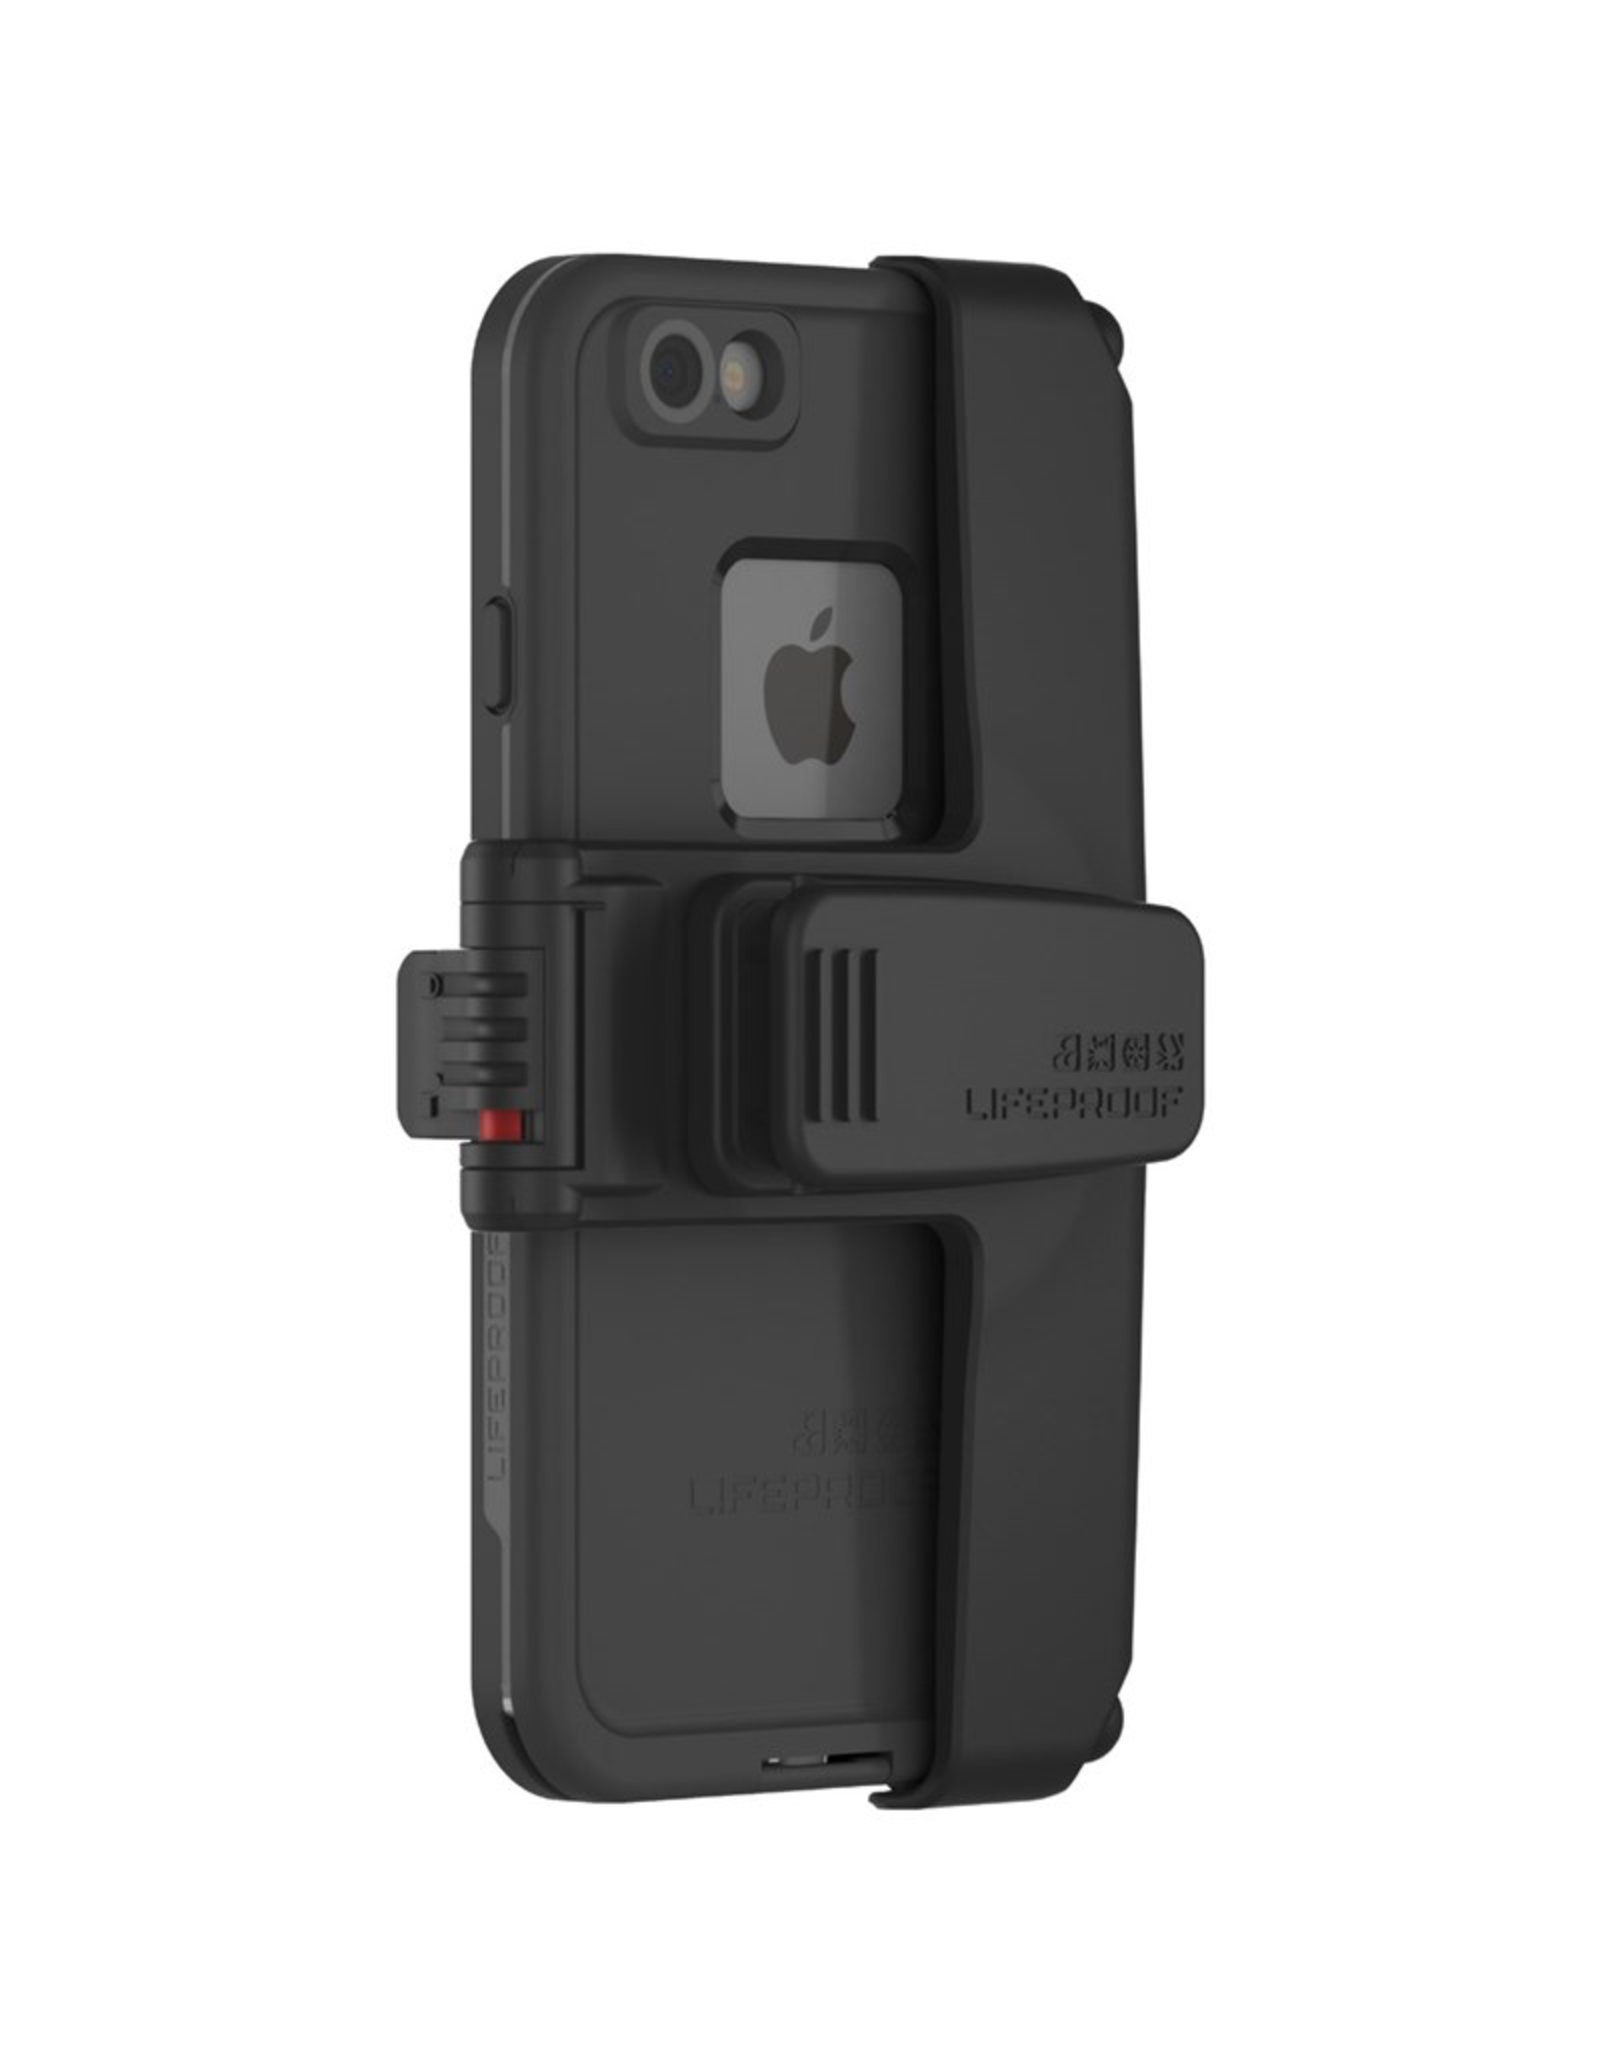 Lifeproof LifeProof LifeActiv Belt Clip for iPhone 6 suits FRE and NUUD - Black EOL